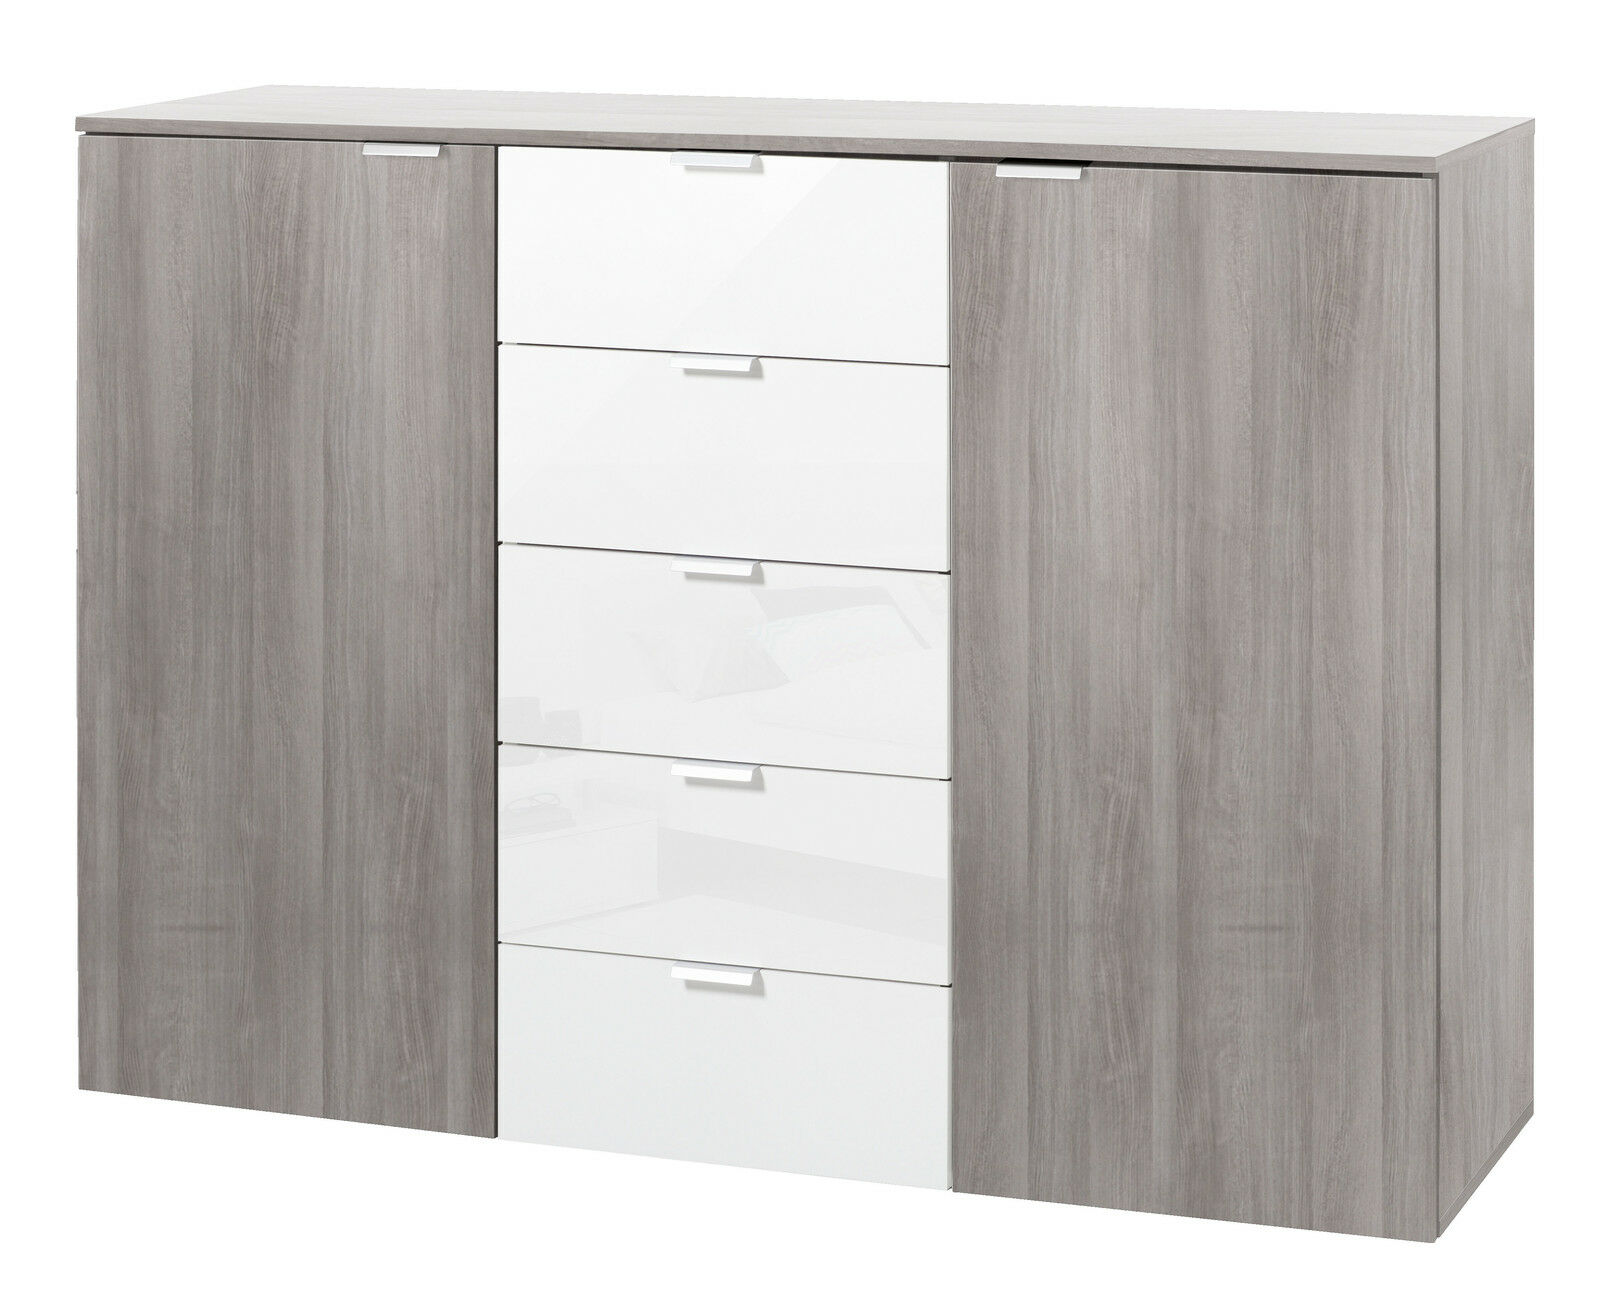 kommode sideboard anrichte 2trg 5 schub aktenschrank silber eiche wei hochglanz eur 99 95. Black Bedroom Furniture Sets. Home Design Ideas